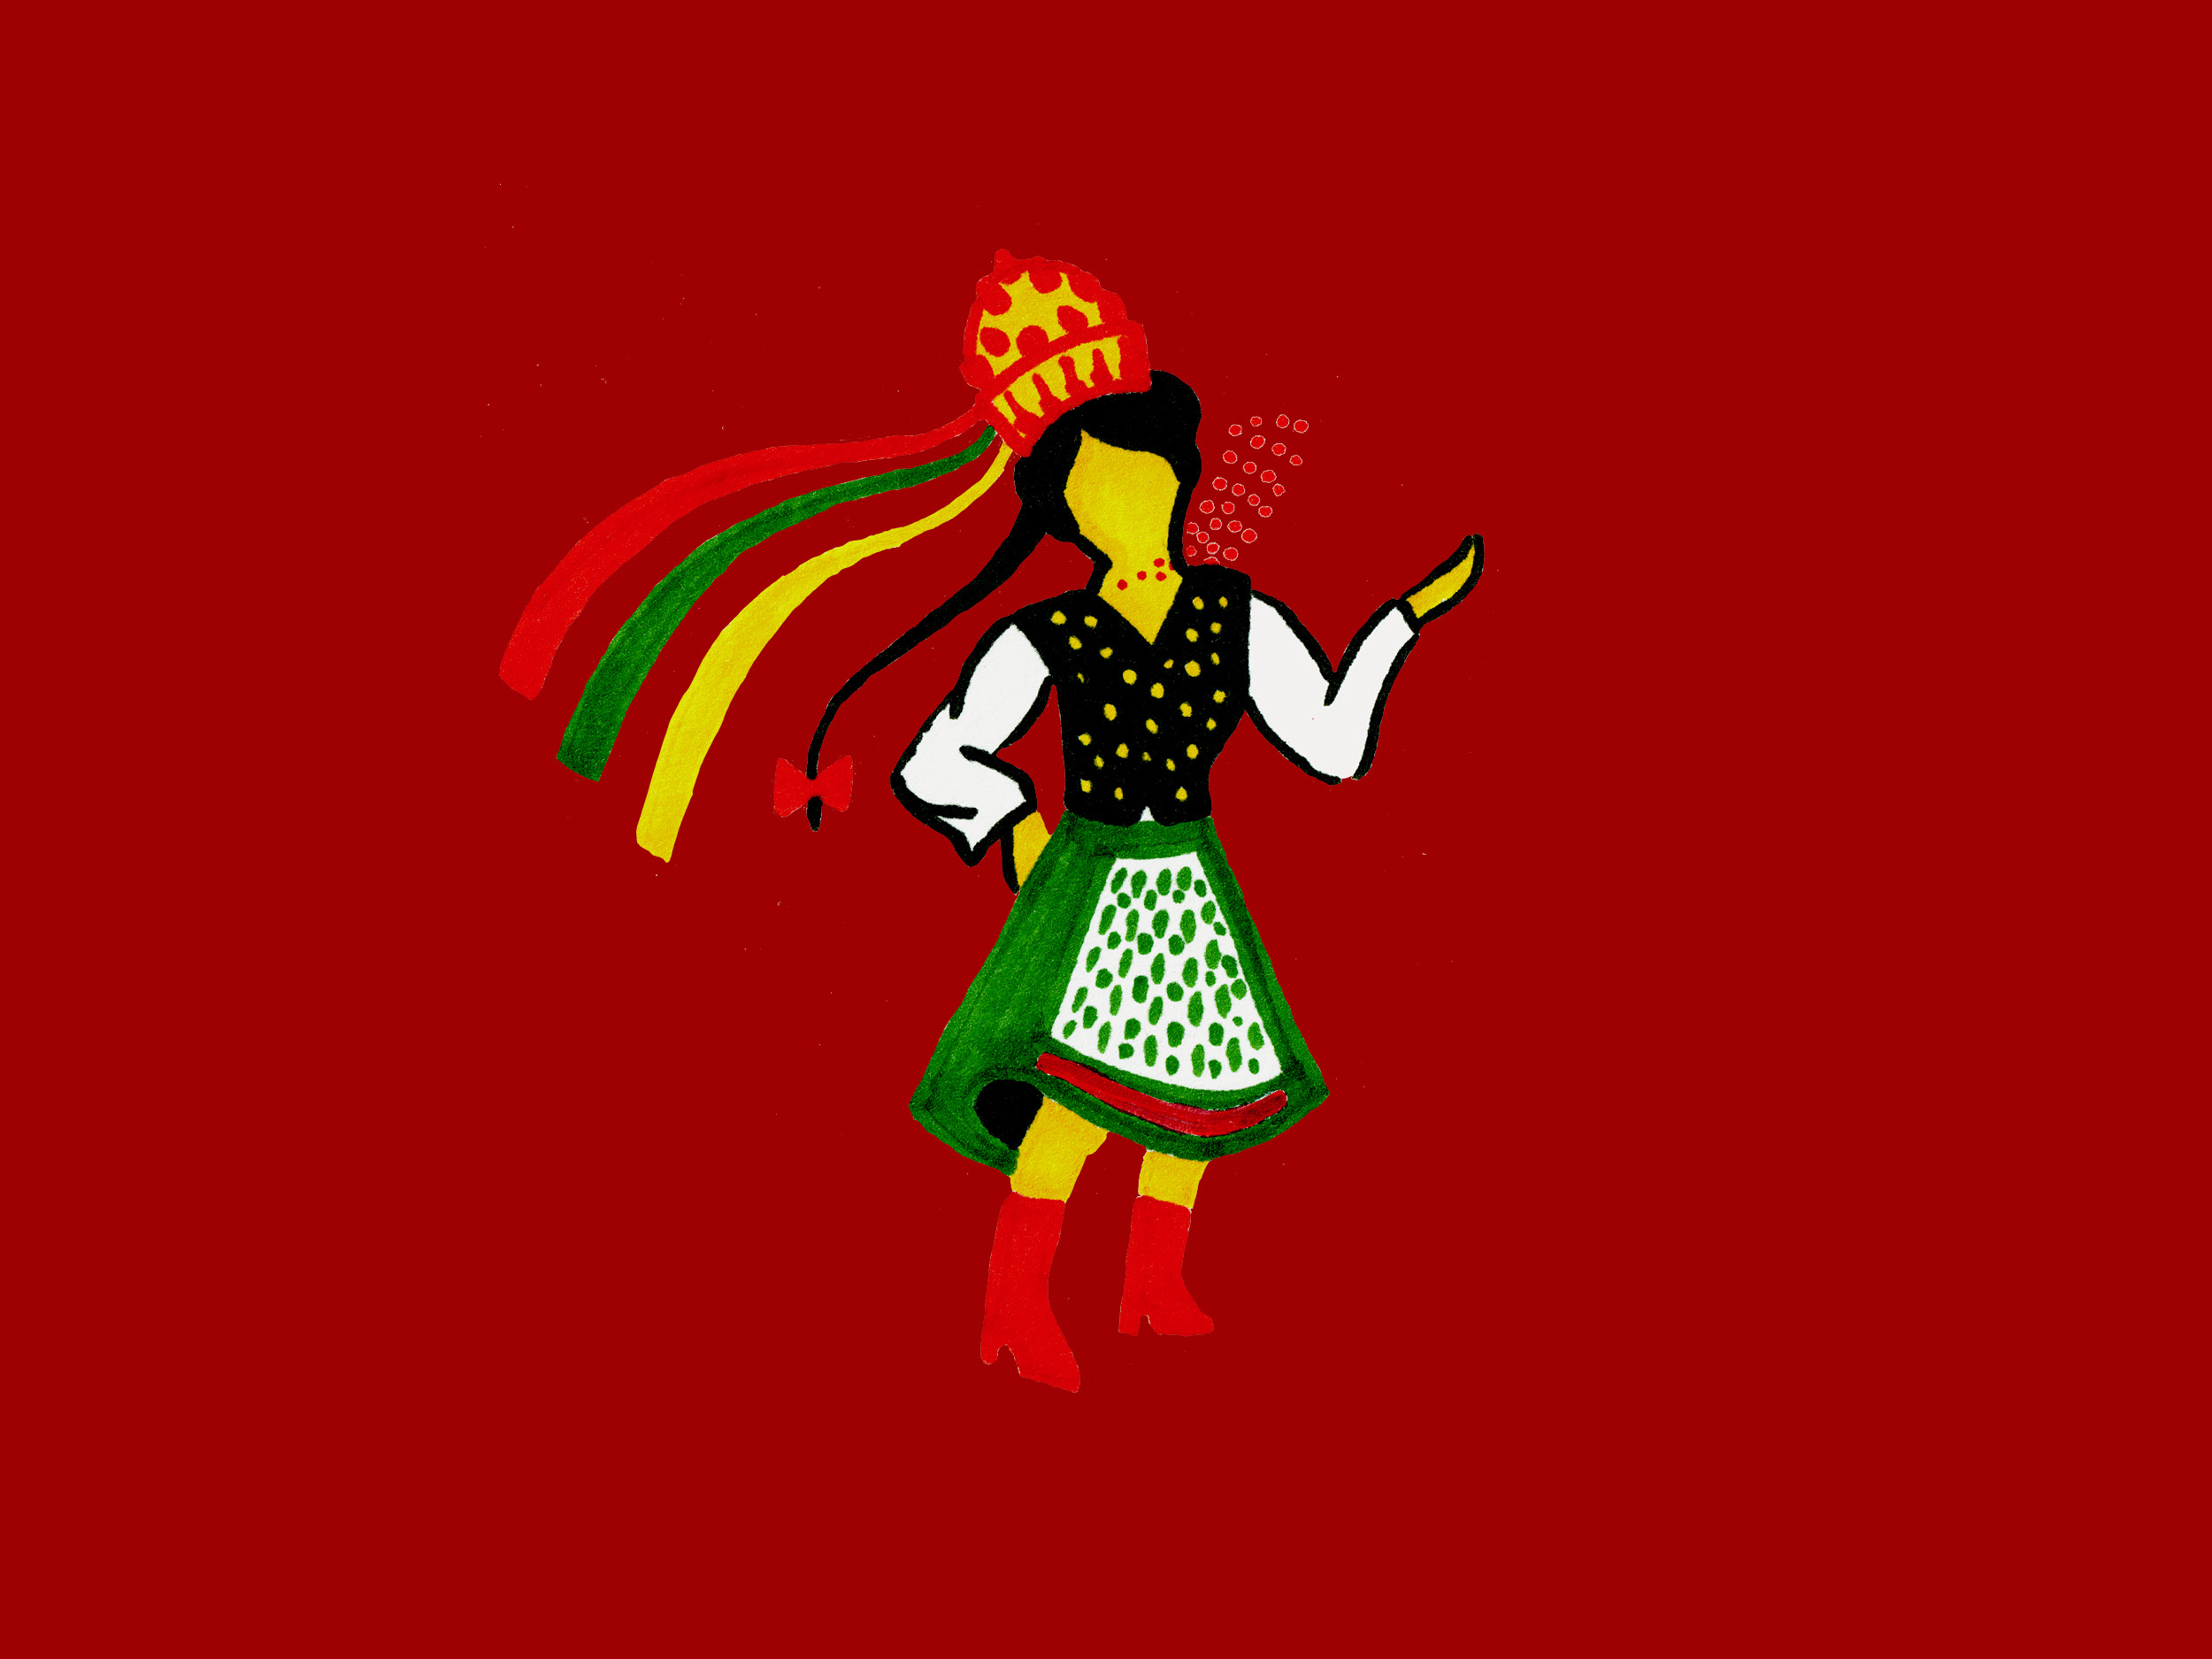 elenapotter-illustration-lakeshorebeverage-dancer.jpg